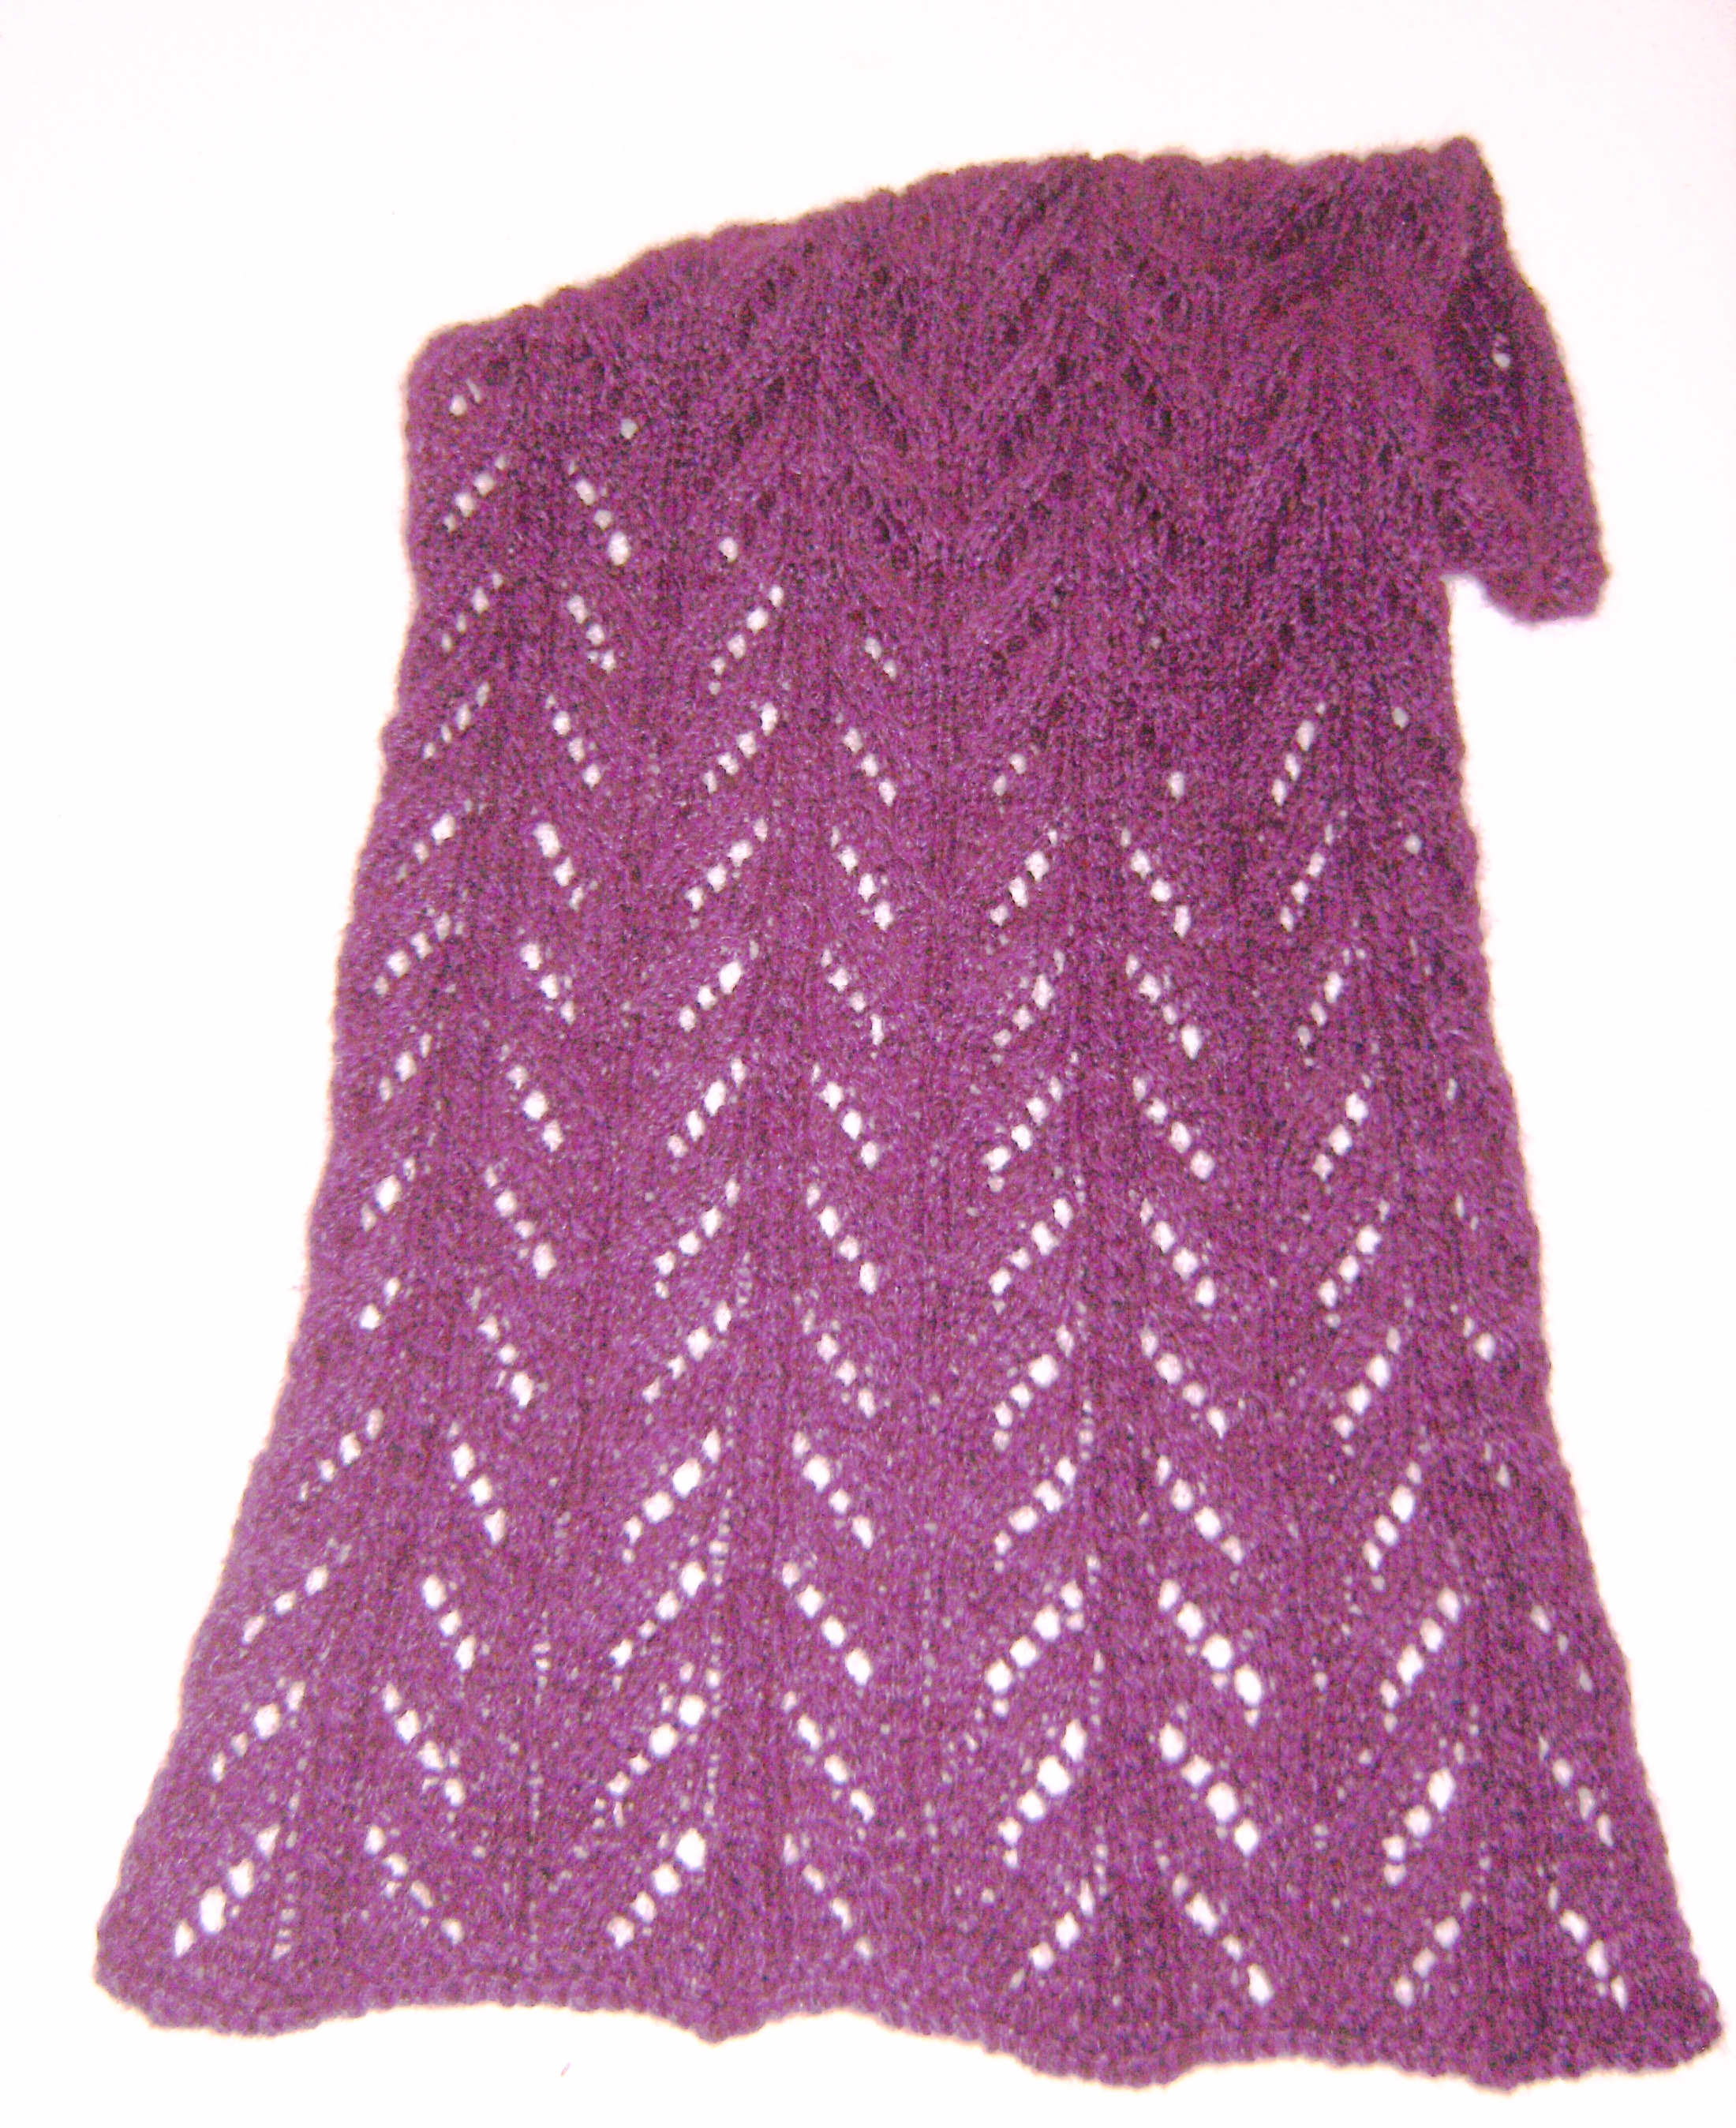 Scarf Patterns : SCARF LOOM PATTERN - FREE PATTERNS